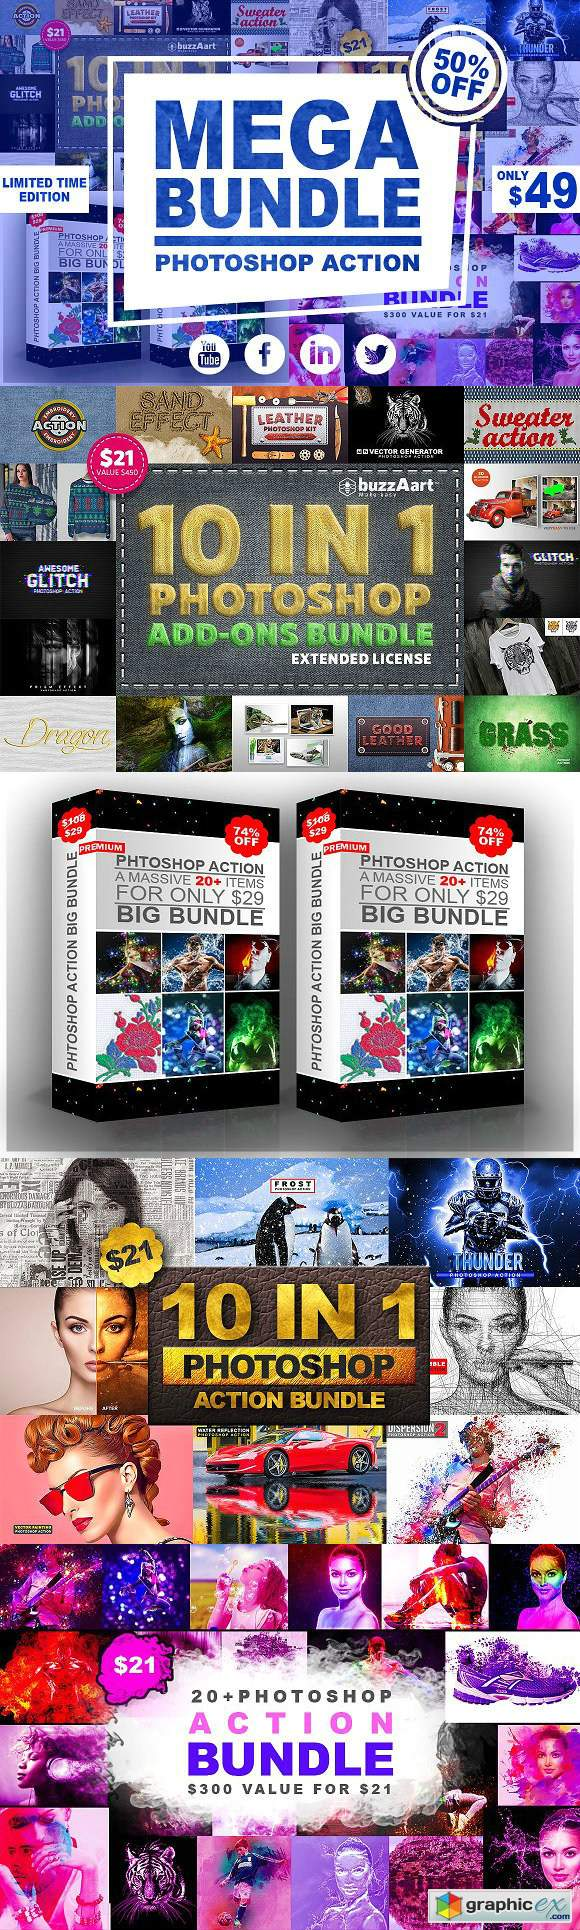 Mega Bundle Photoshop Action